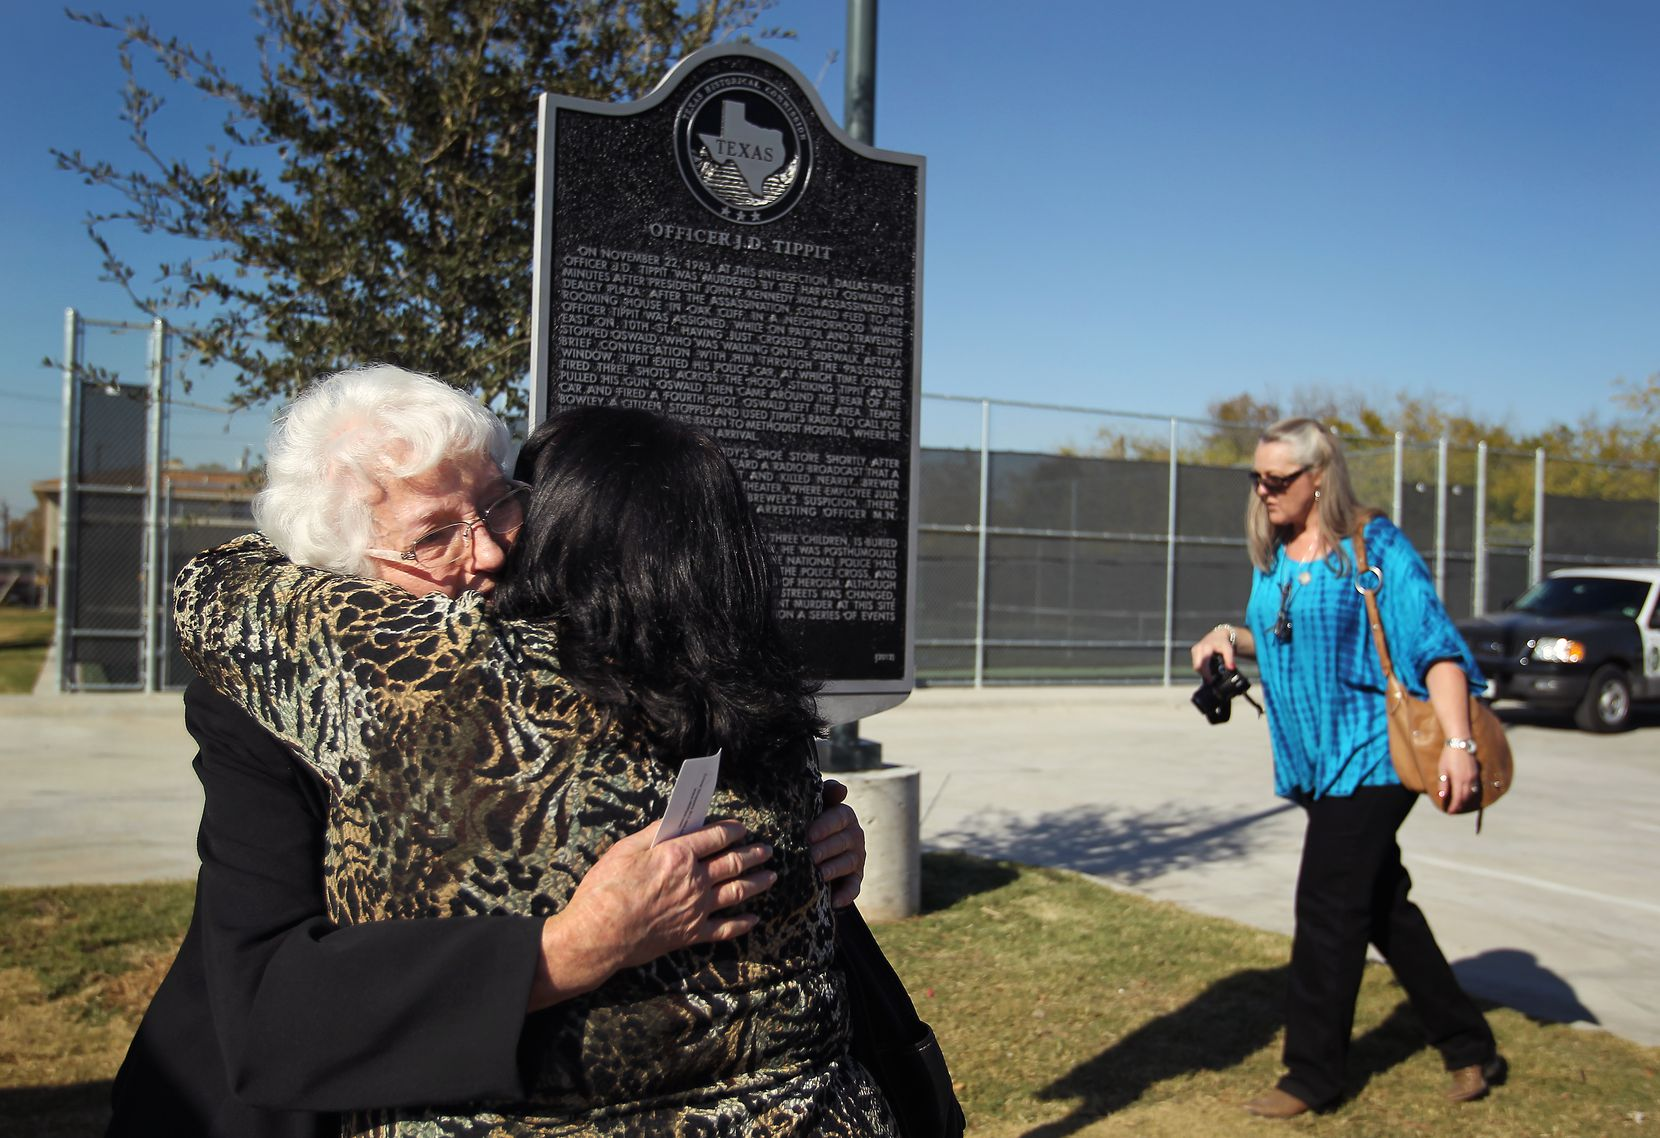 Marie Tippit hugged her daughter, Brenda Tippit, following the dedication ceremony for the historical marker for J.D. Tippit in Oak Cliff in 2012.